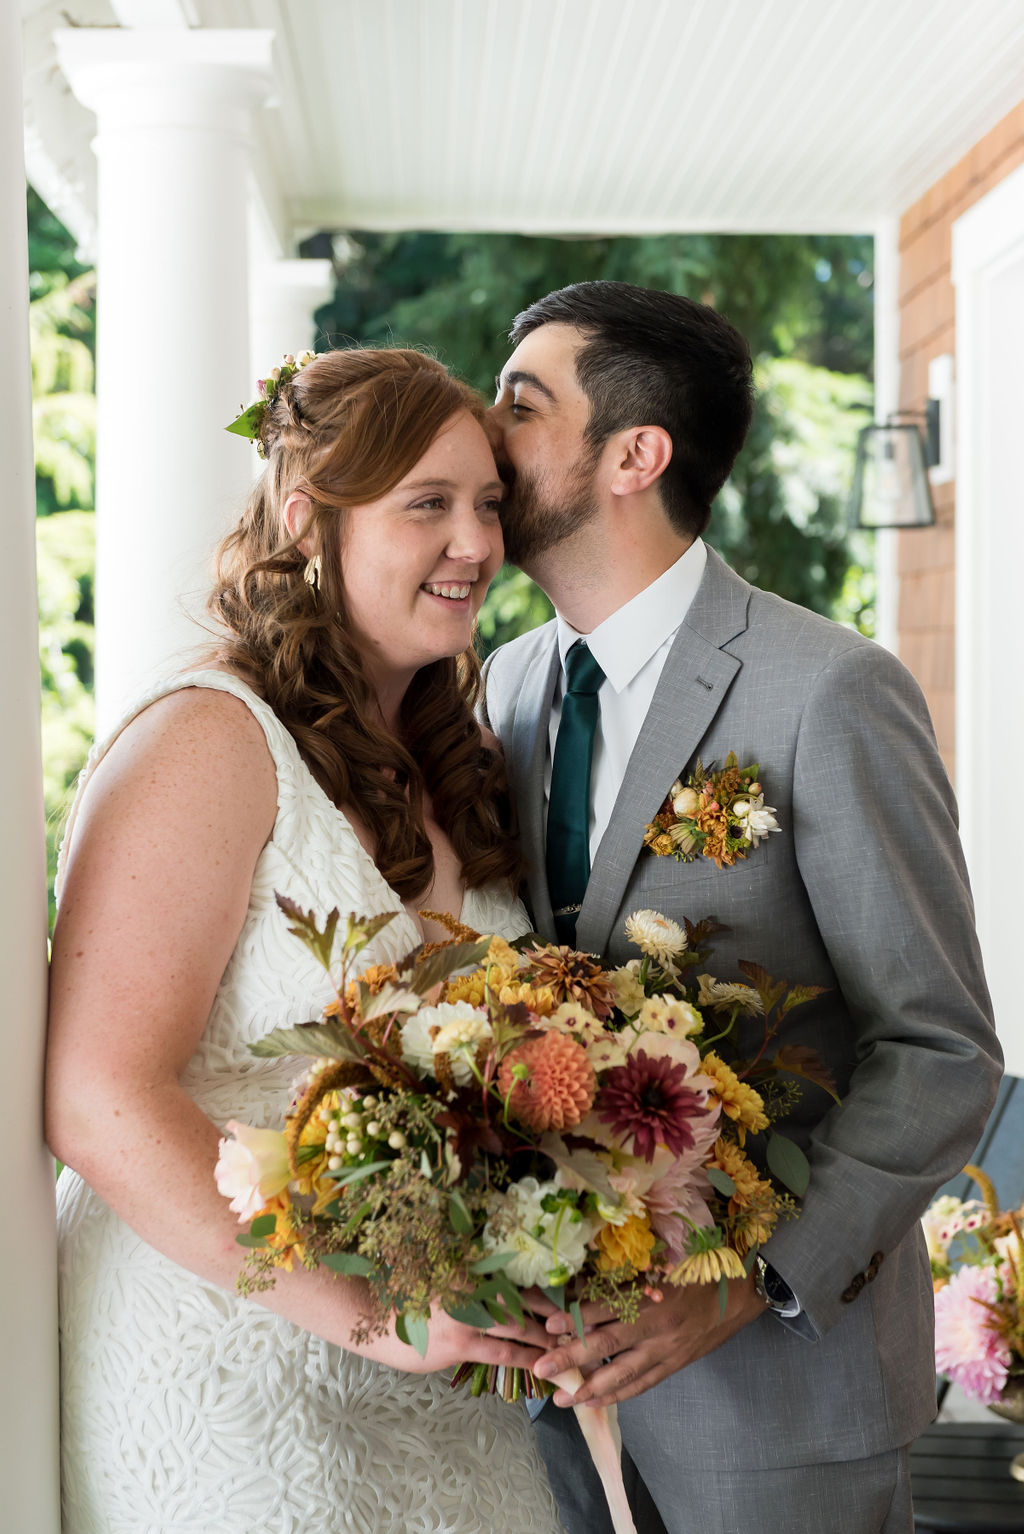 a bride and groom on a porch, holding a bouquet